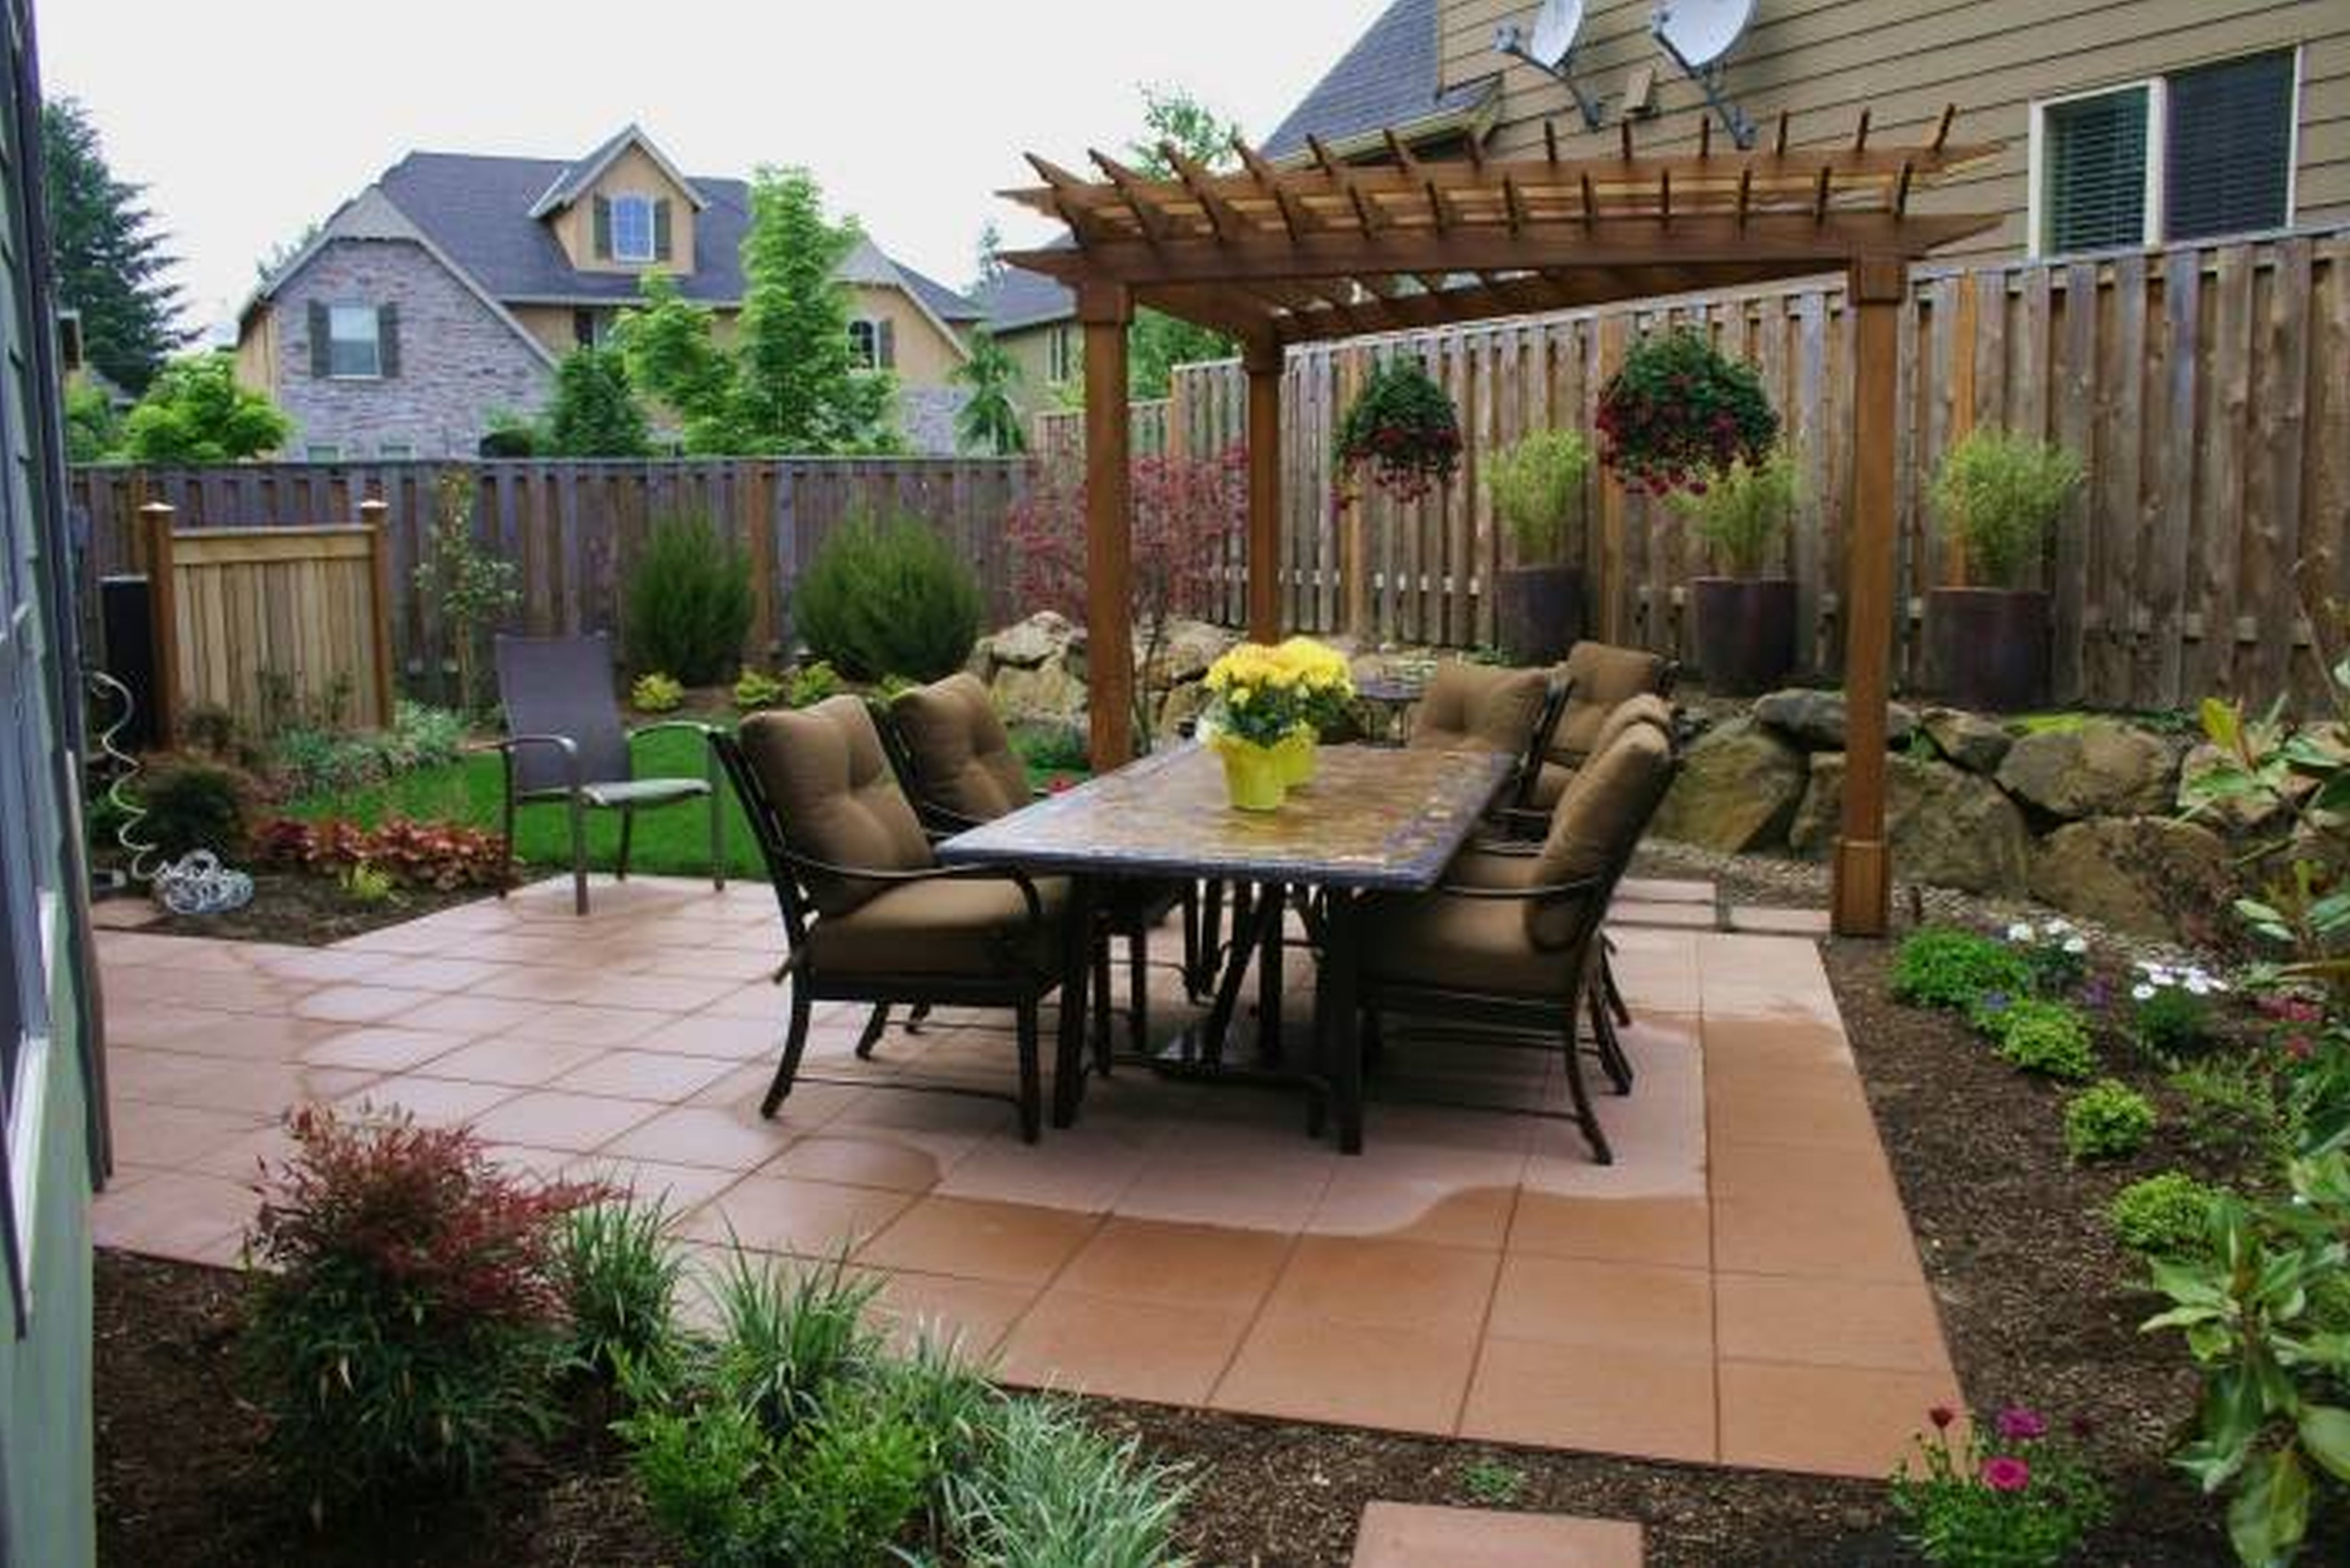 Best Backyard Patio Ideas Rdcny In Wonderful Wikroom Backyard within Backyard Patio Ideas